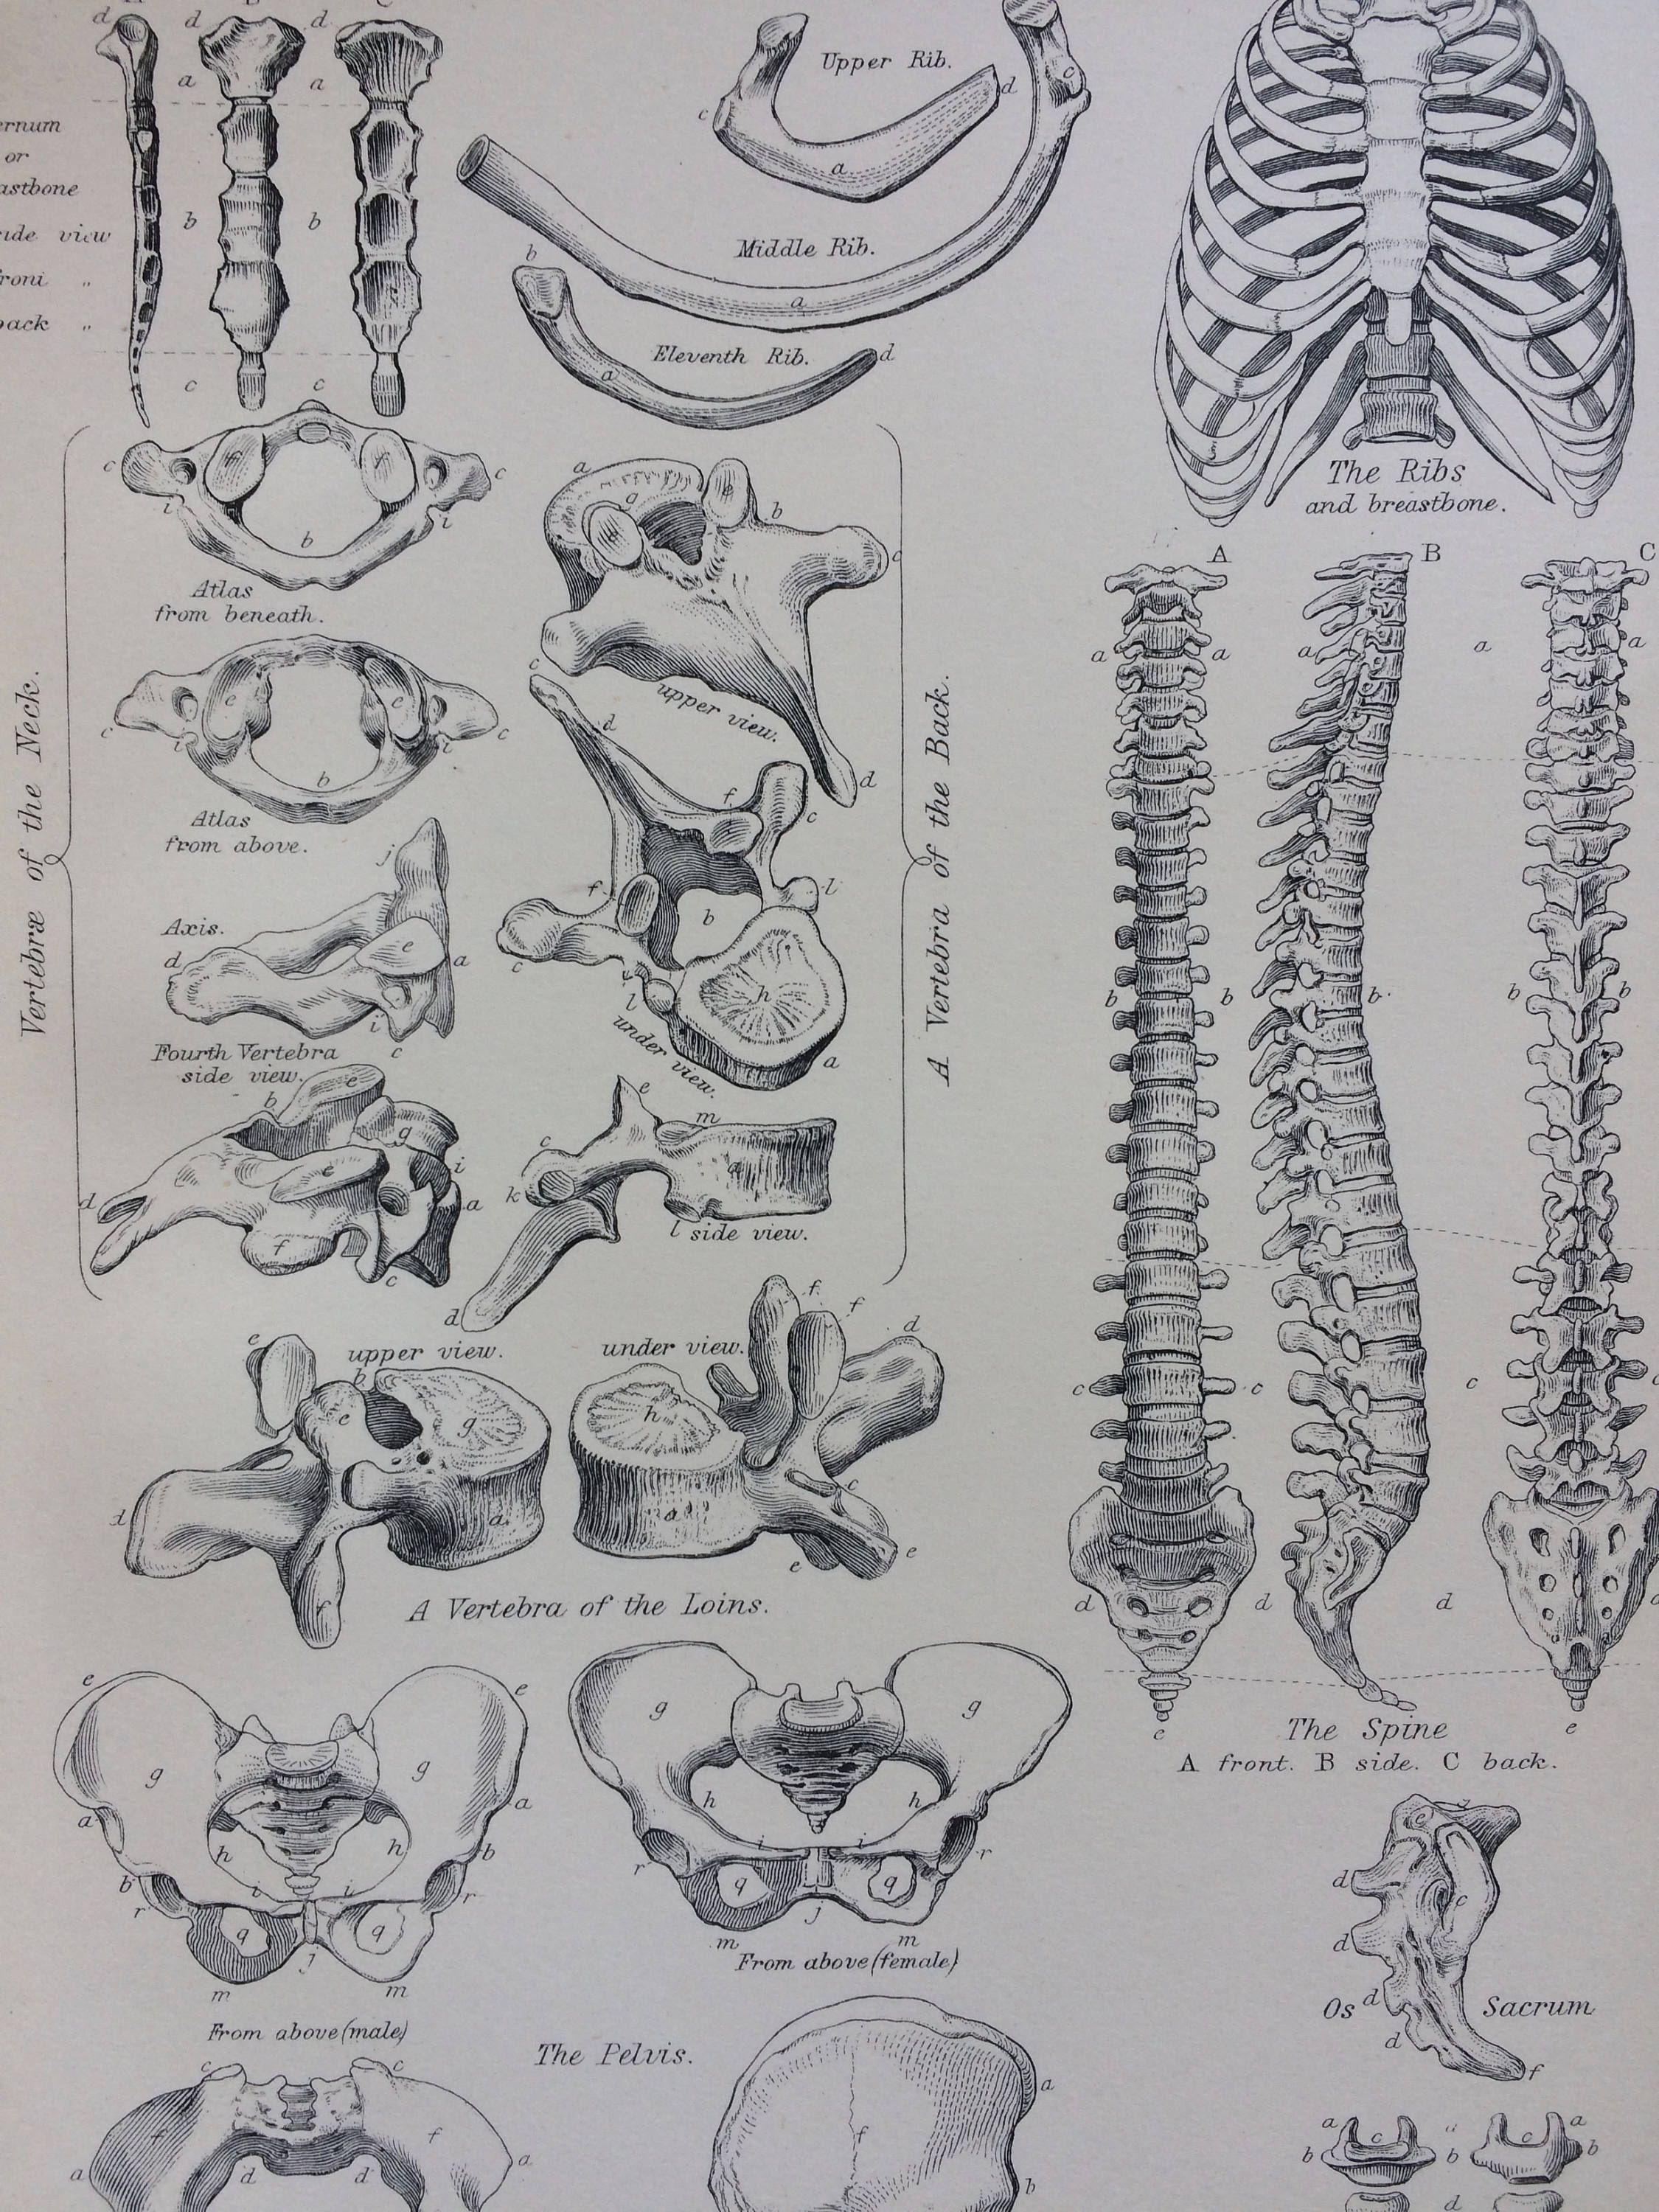 hight resolution of 1891 backbone original antique encyclopaedia illustration wall decor home decor osteology bones